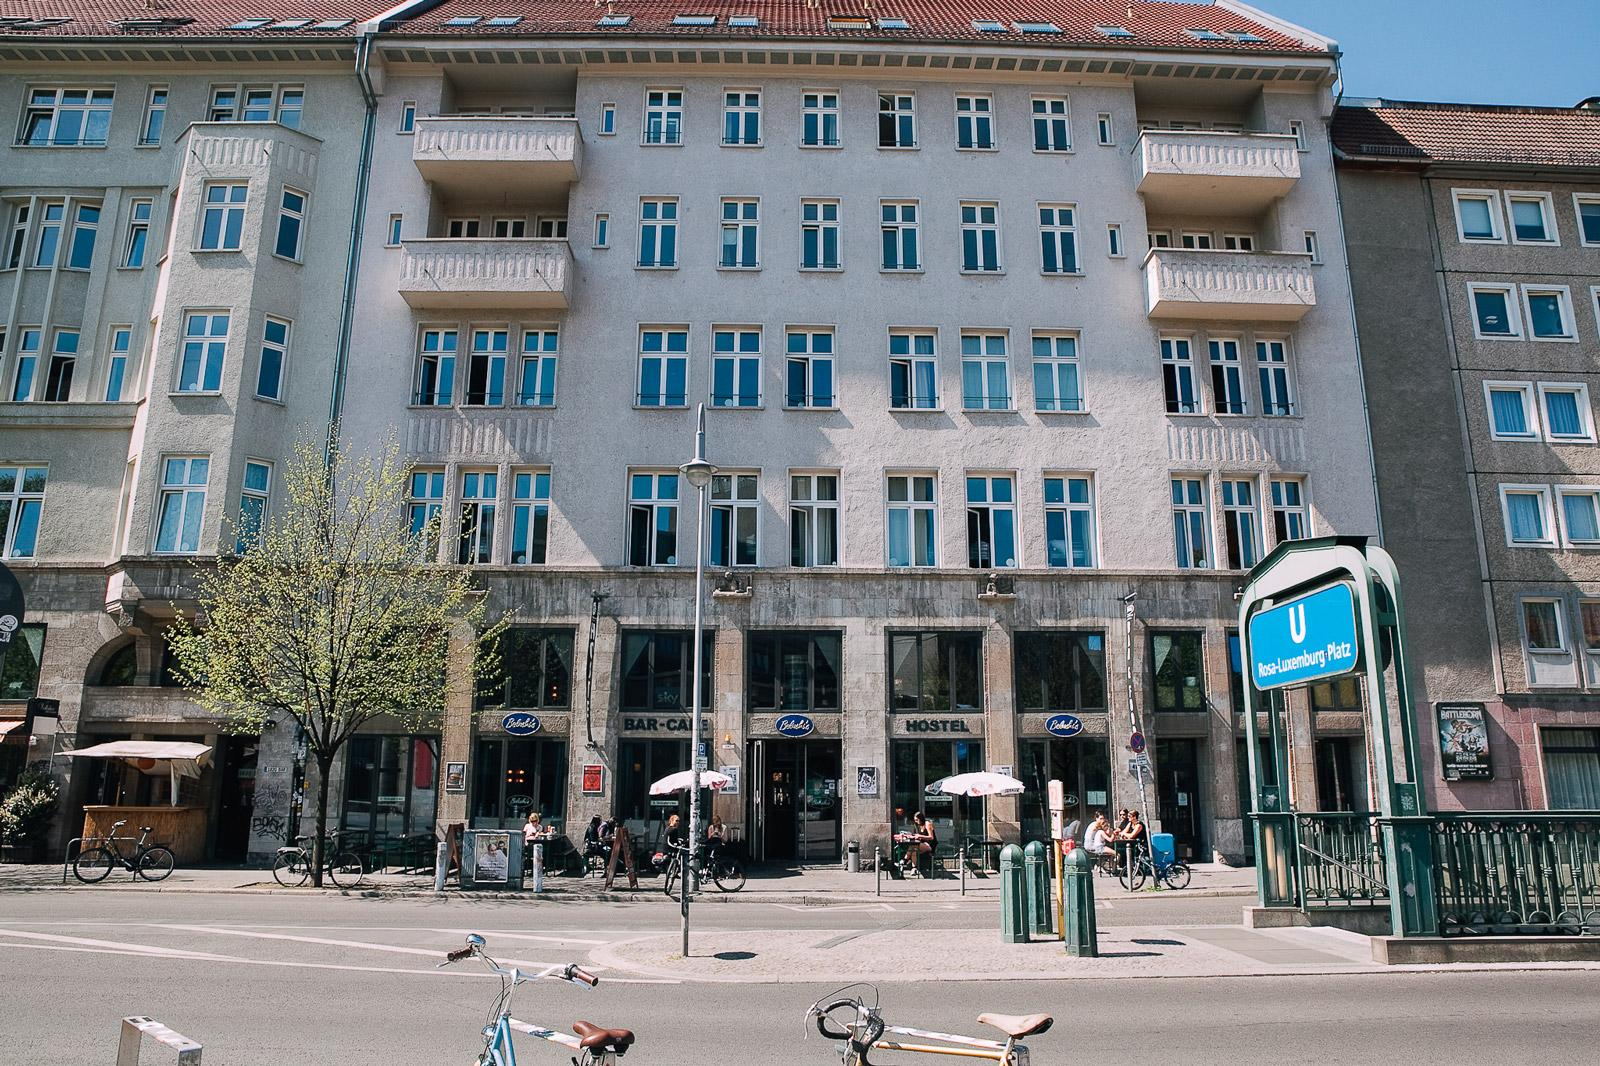 St Christopher's Inn Berlin